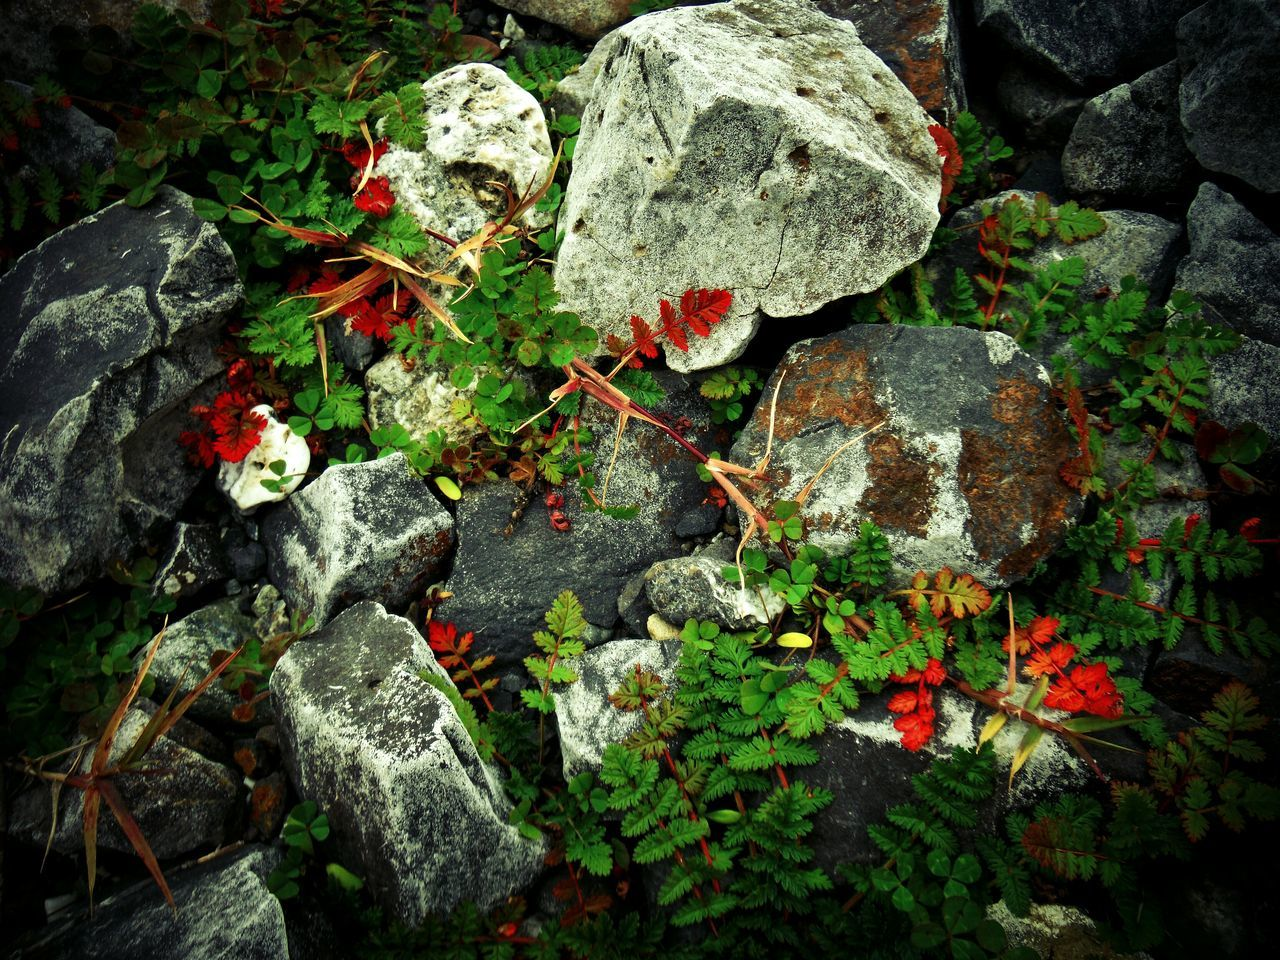 Red And Green Leaves Fall Decor Autumn Decor Decorative Fall Leaves Fall Colors Fall Beauty Autumn Leaves Autumn Colors Autumn Leaves Arrangement Rock And Plant Black Butte Black Butte California Decoration Leaves And Rocks Leaves And Stones Stones And Leaves Vignette High Angle View Outdoors Pretty Leaves Nature Leaf